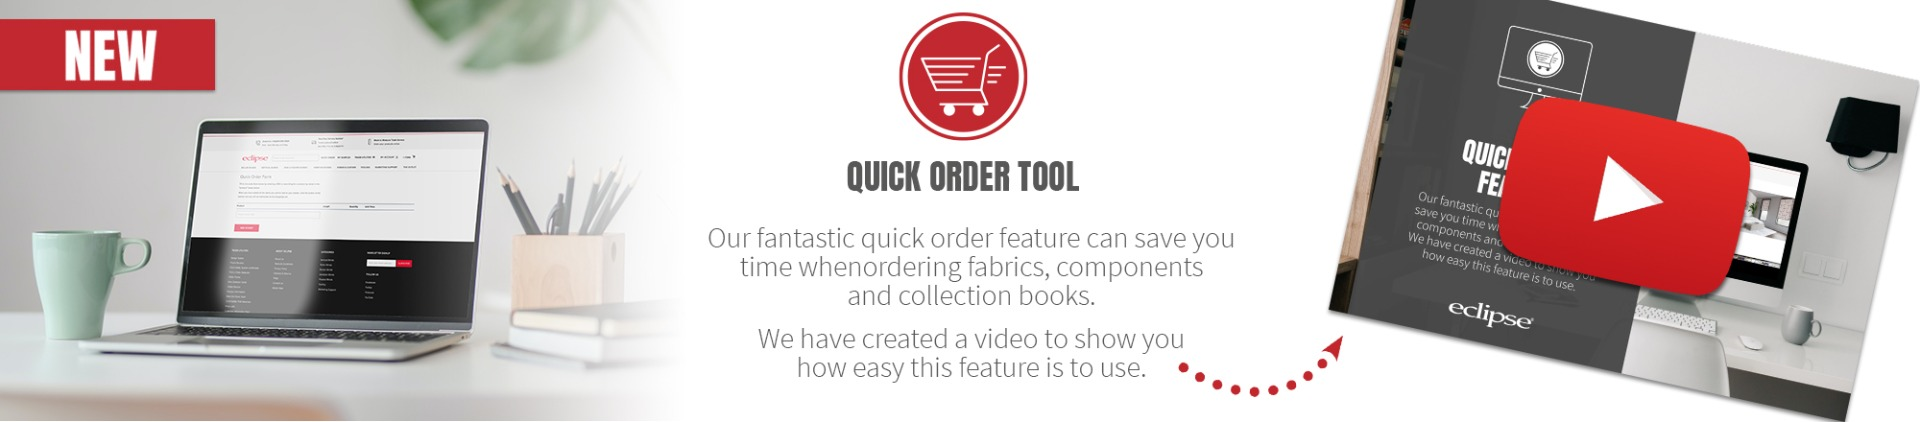 Quick Order Tool Homepage Banner